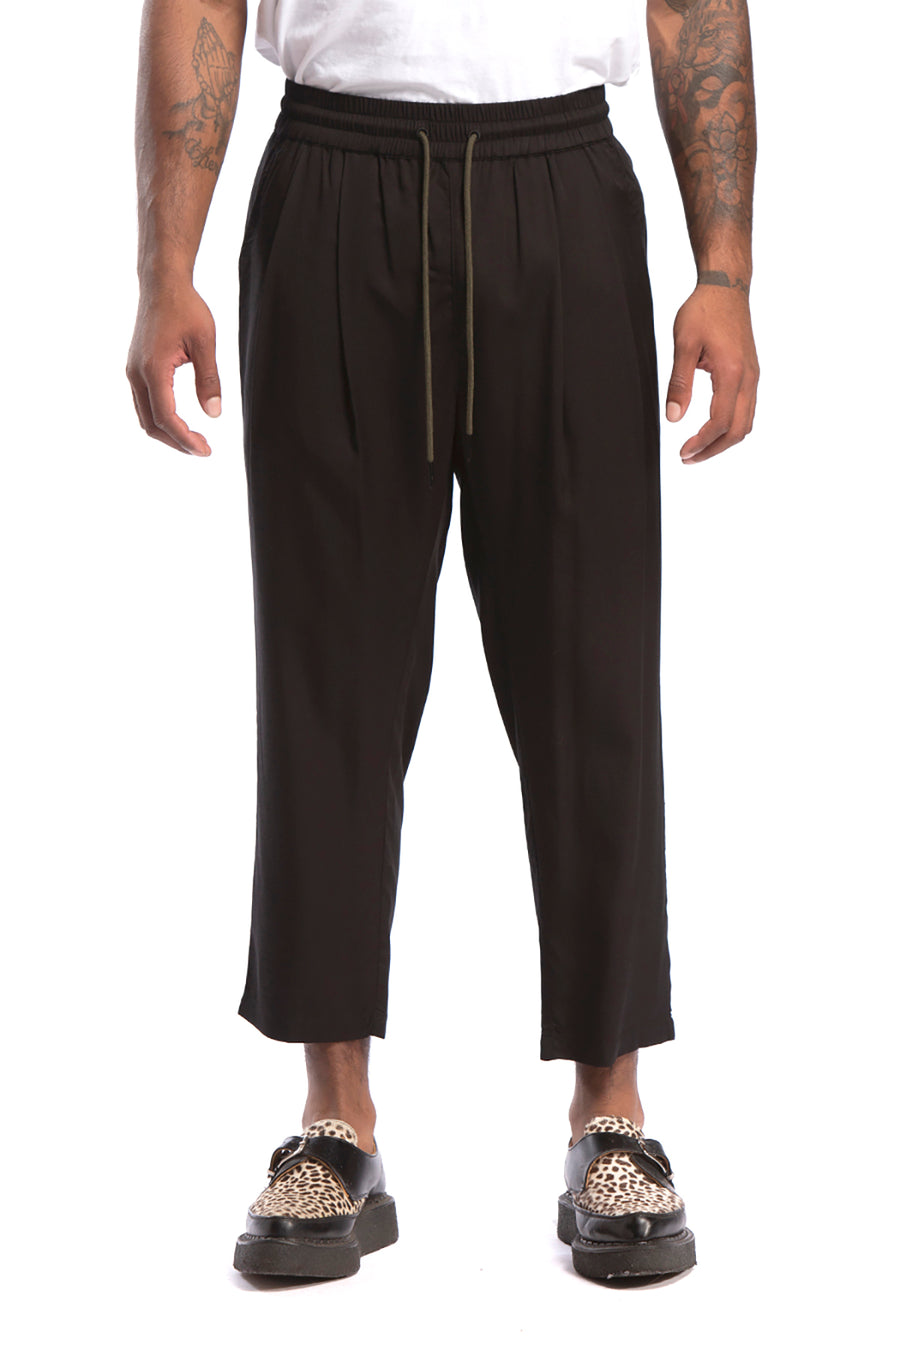 candorofficial - Lakewood Ankle Pant, Black - Bottoms